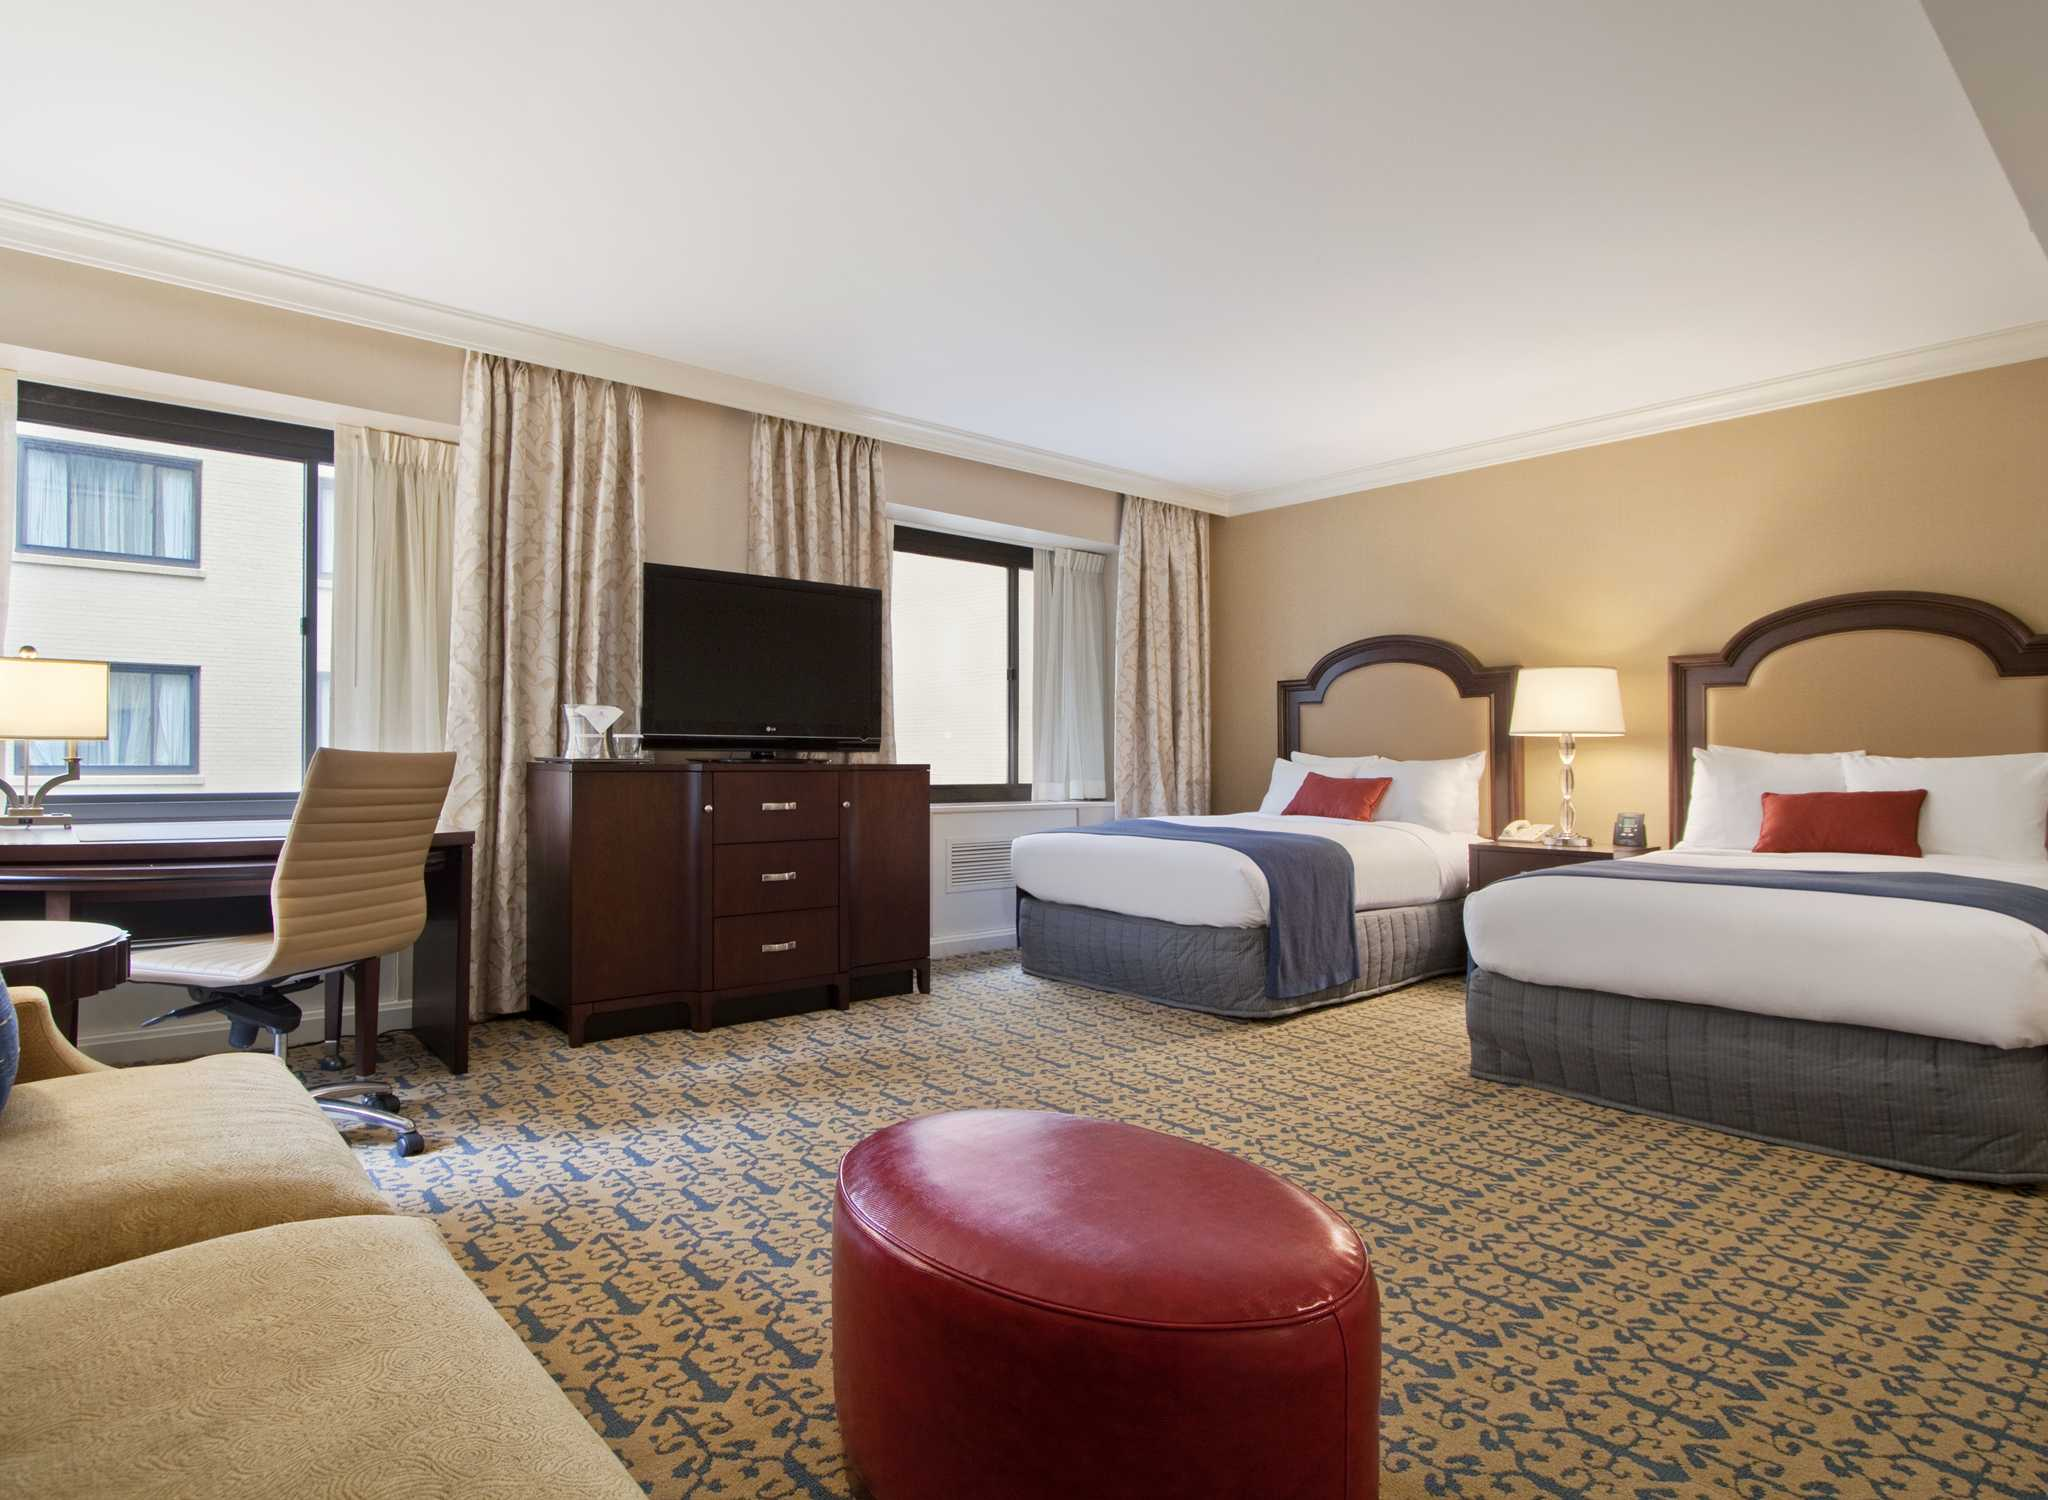 Hoteles en el centro de la ciudad de washington dc hotel de lujo capital hilton en dc for 2 bedroom suite hotels washington dc